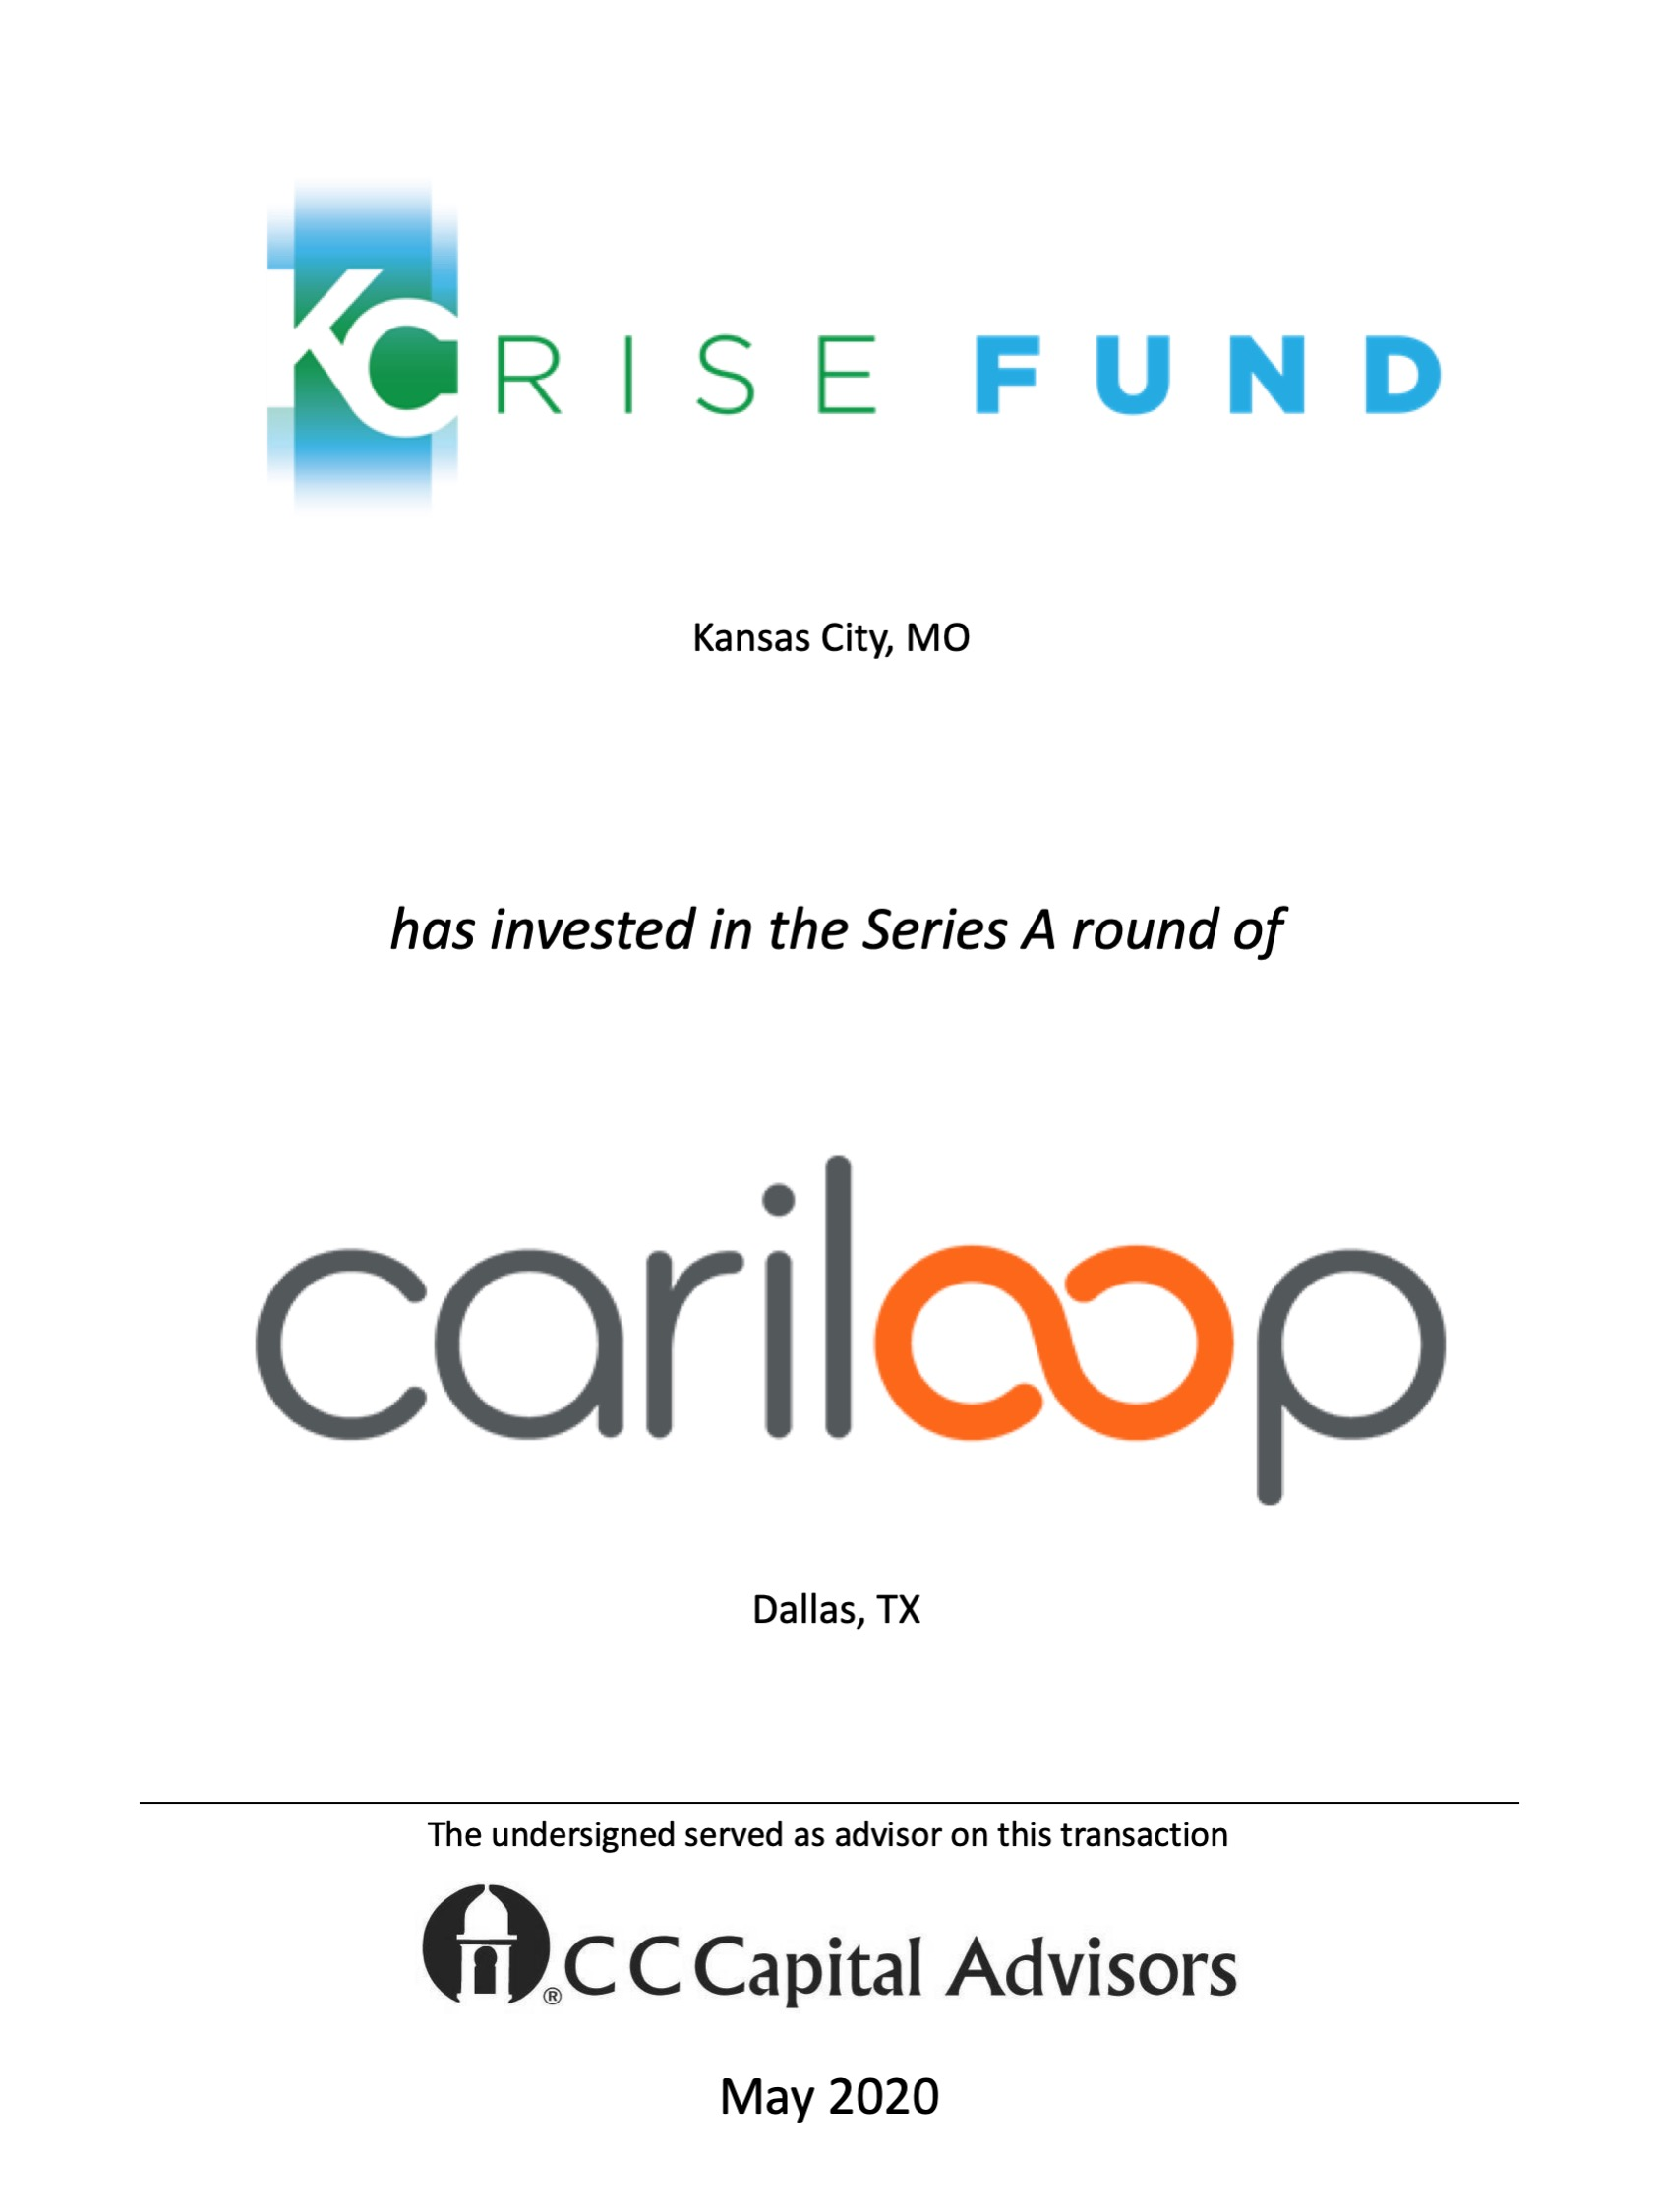 KCRise Fund and Cariloop